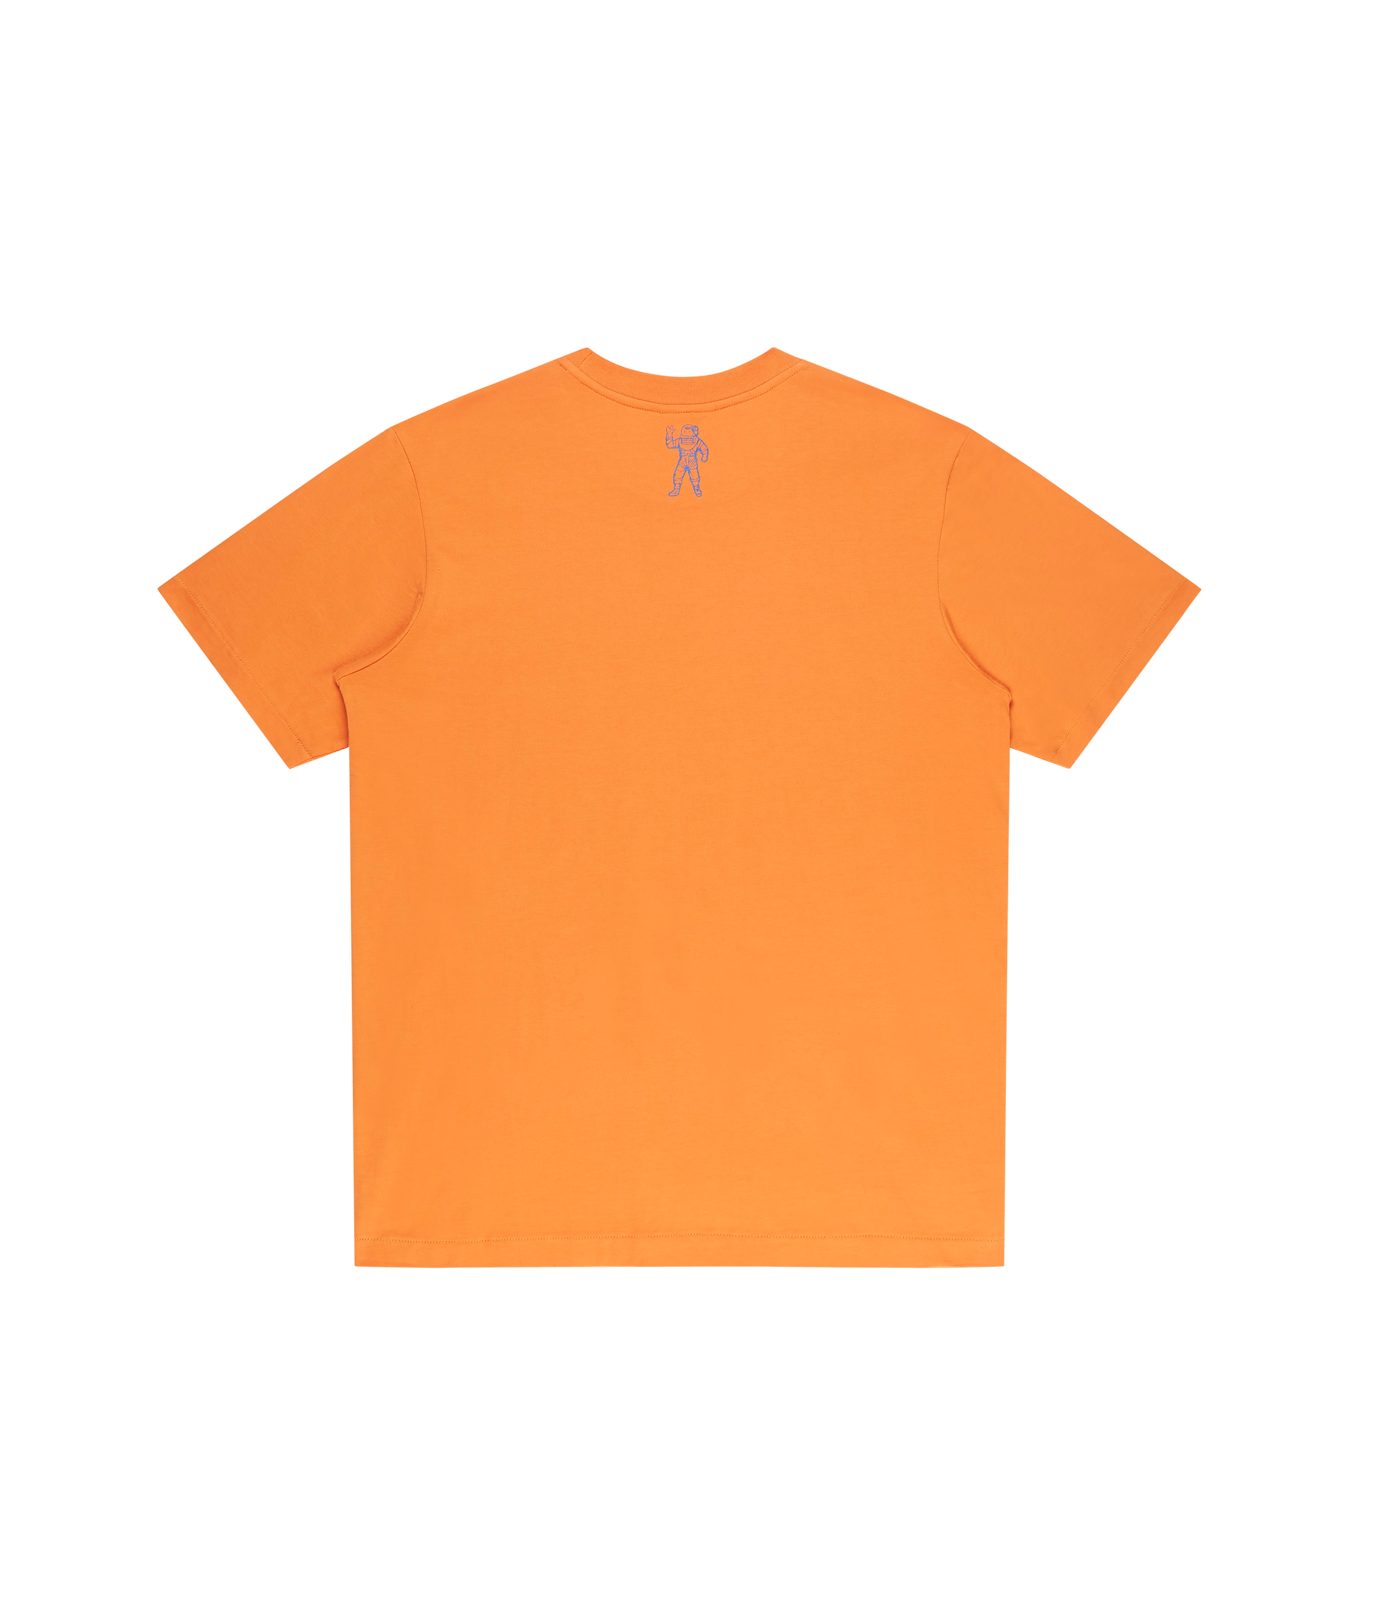 MOUNTAIN LOGO T-SHIRT - ORANGE